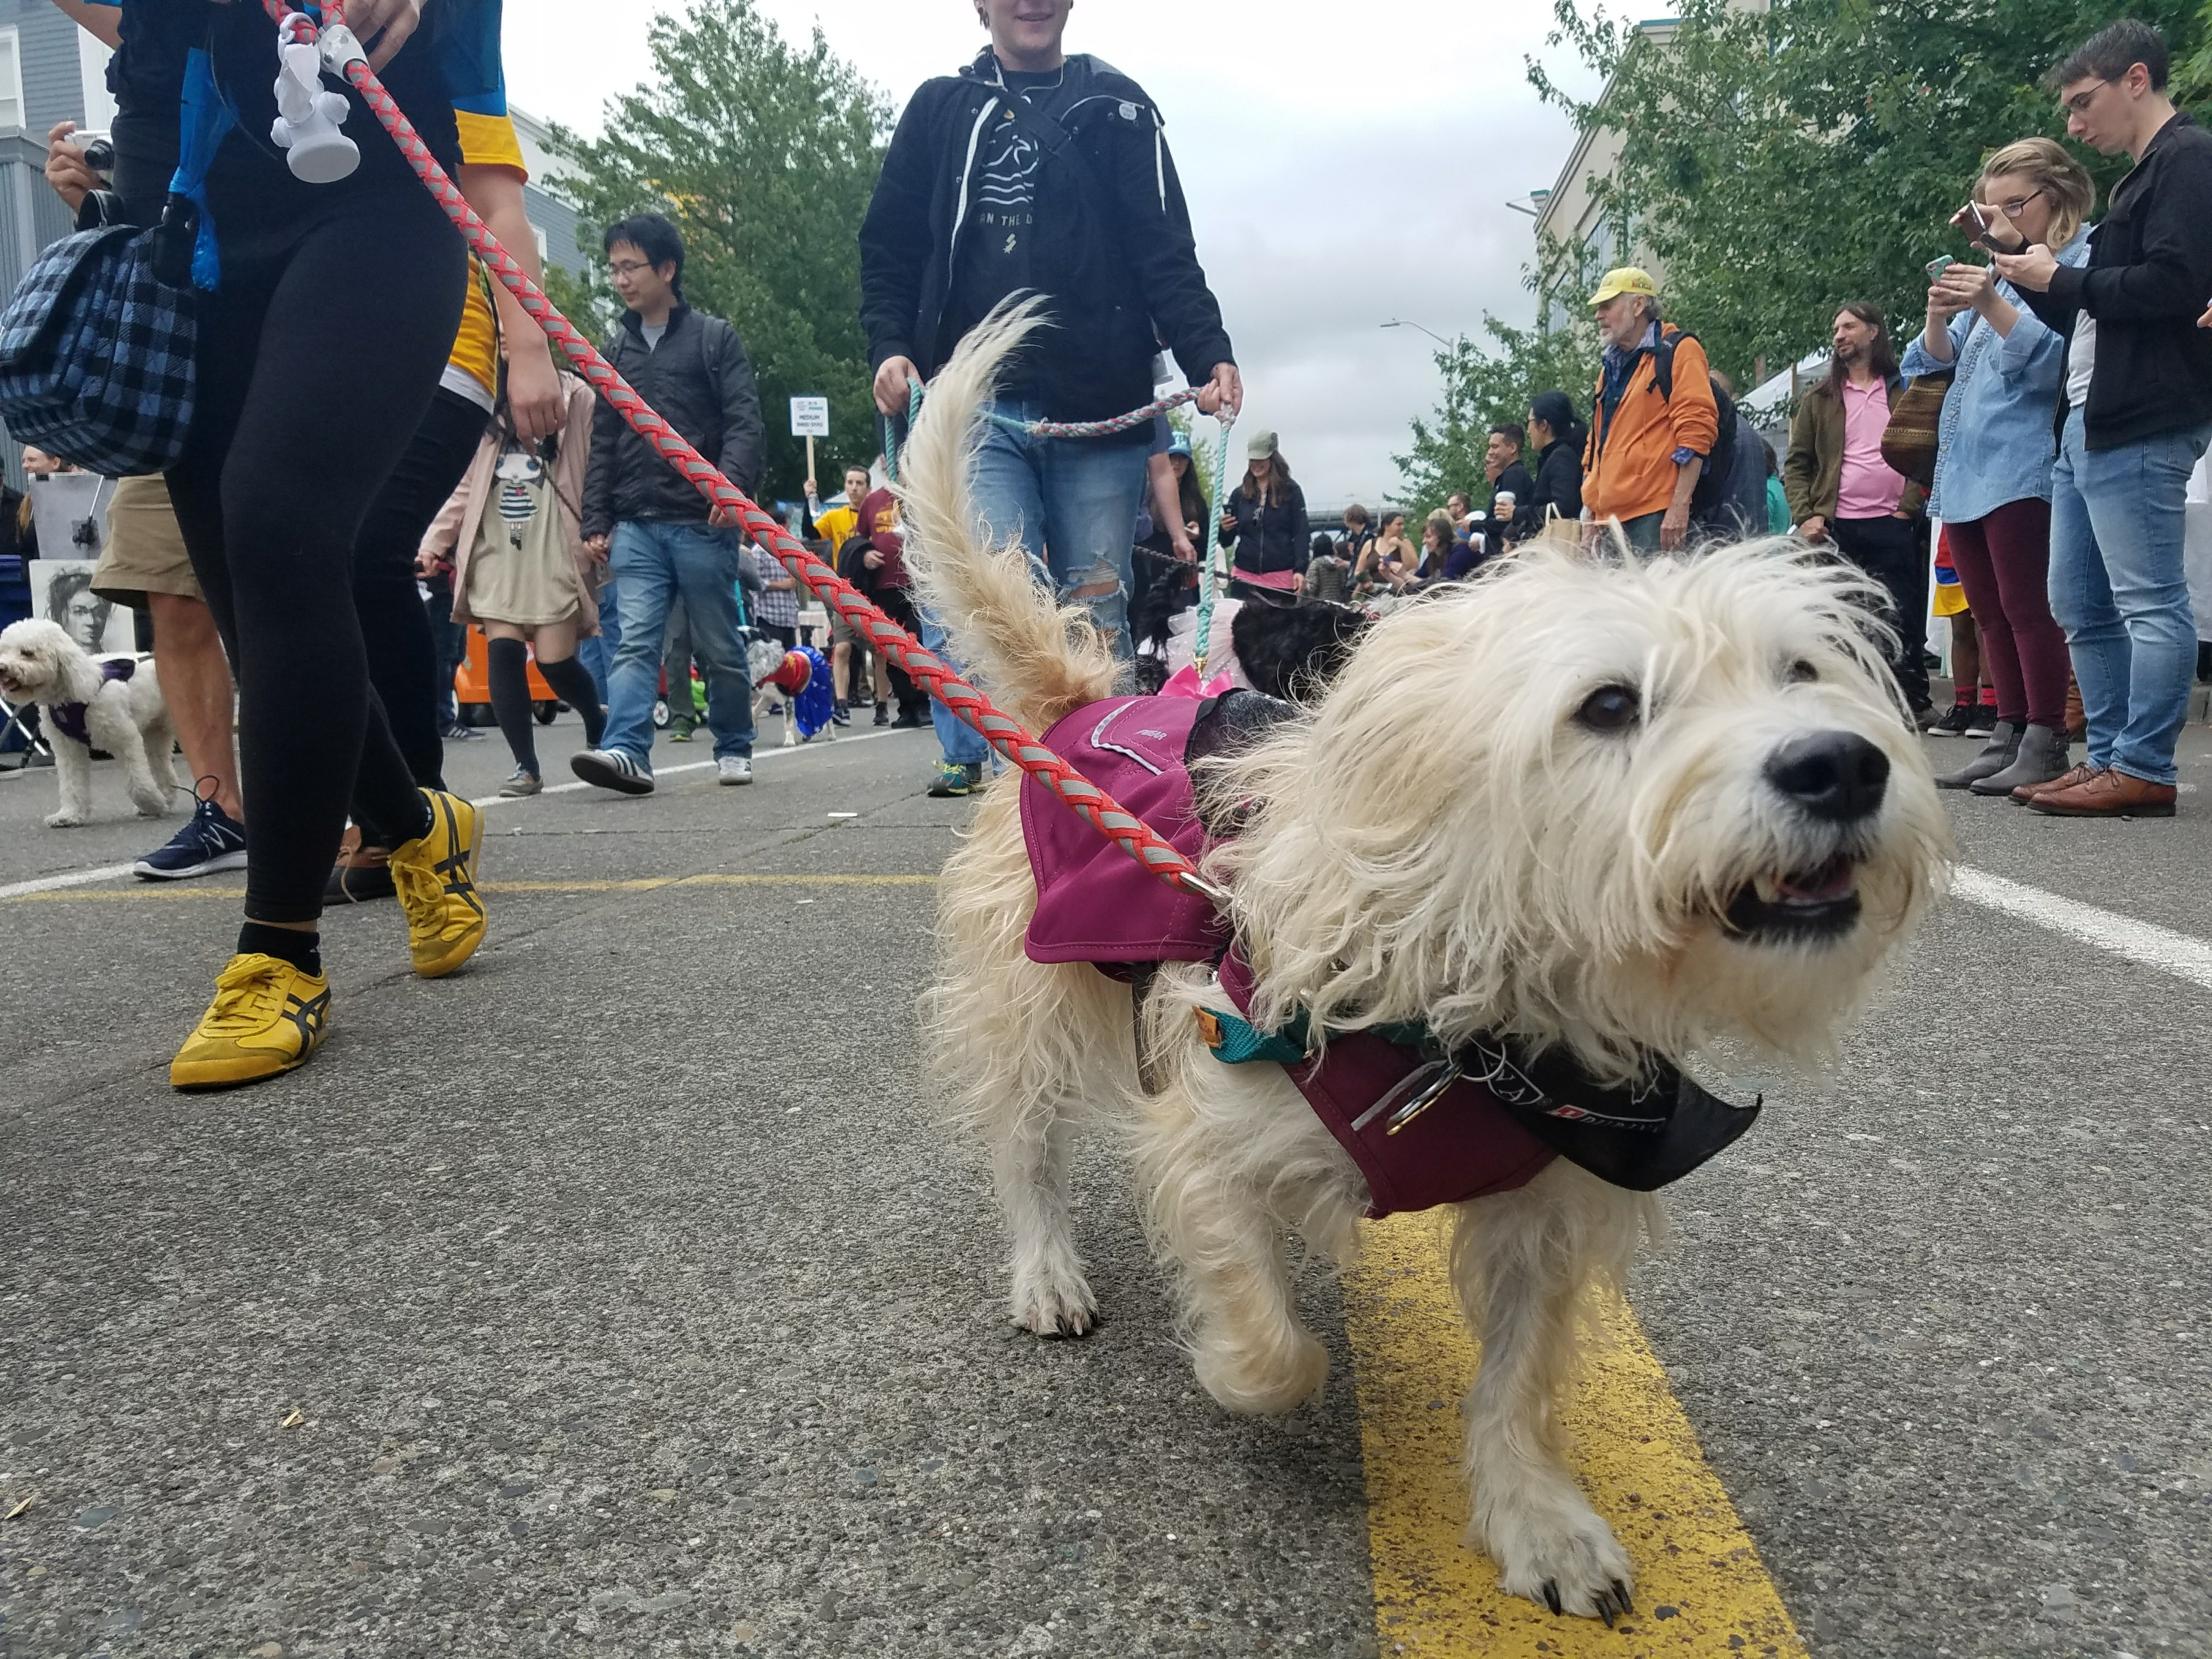 Sunday at the Fremont Fair features the Dog Parade, paralleling its human counter part, marched through the Fair Grounds featuring tons furry friends of all shapes and sizes. June 18 2017. (Image: Just Right by Purina)